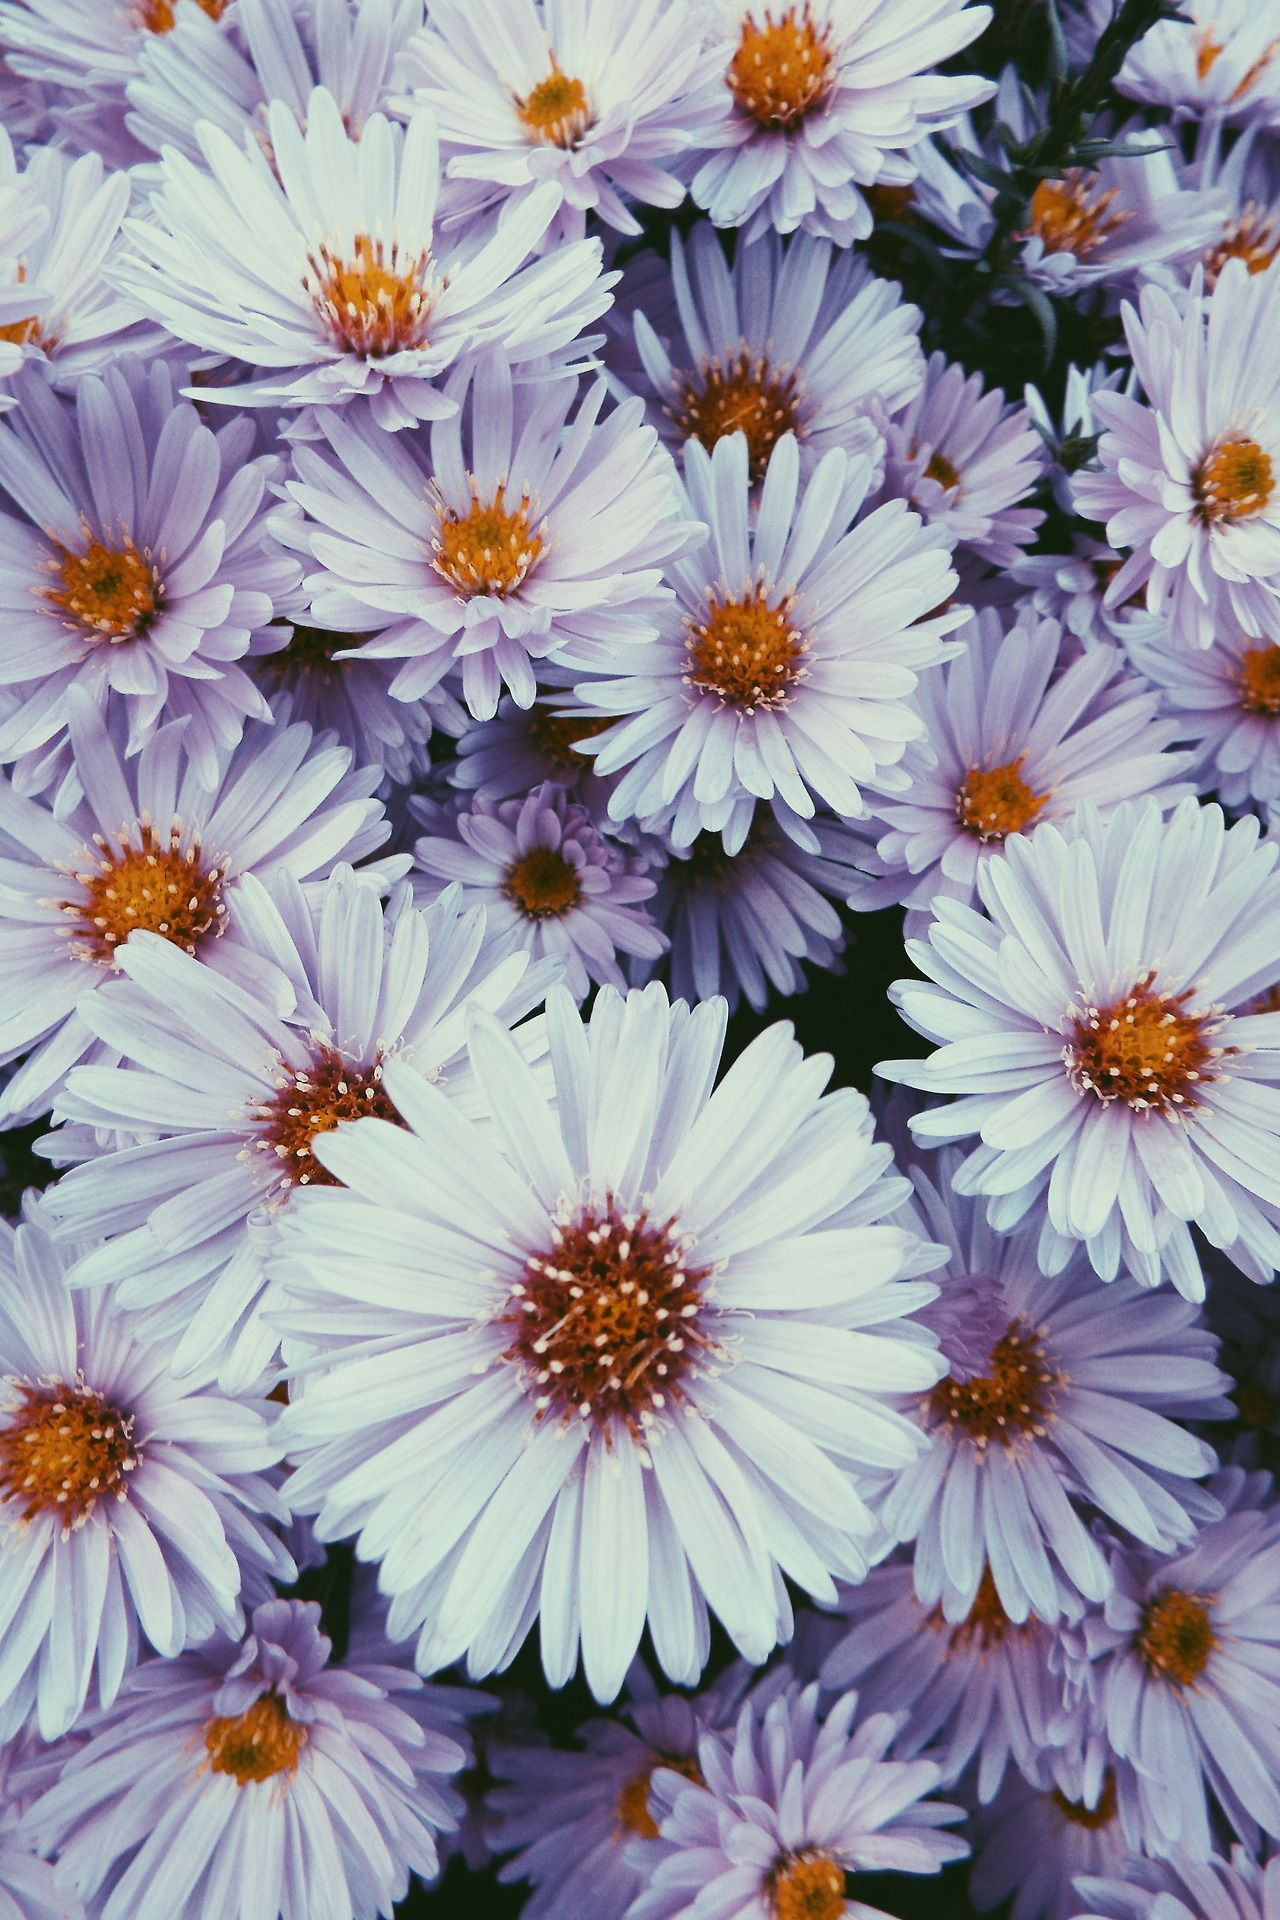 Flower Flowering Plant Aromatic Aster Smooth Aster Petal New York Aster In 2020 Iphone Background Wallpaper Plants Planting Flowers